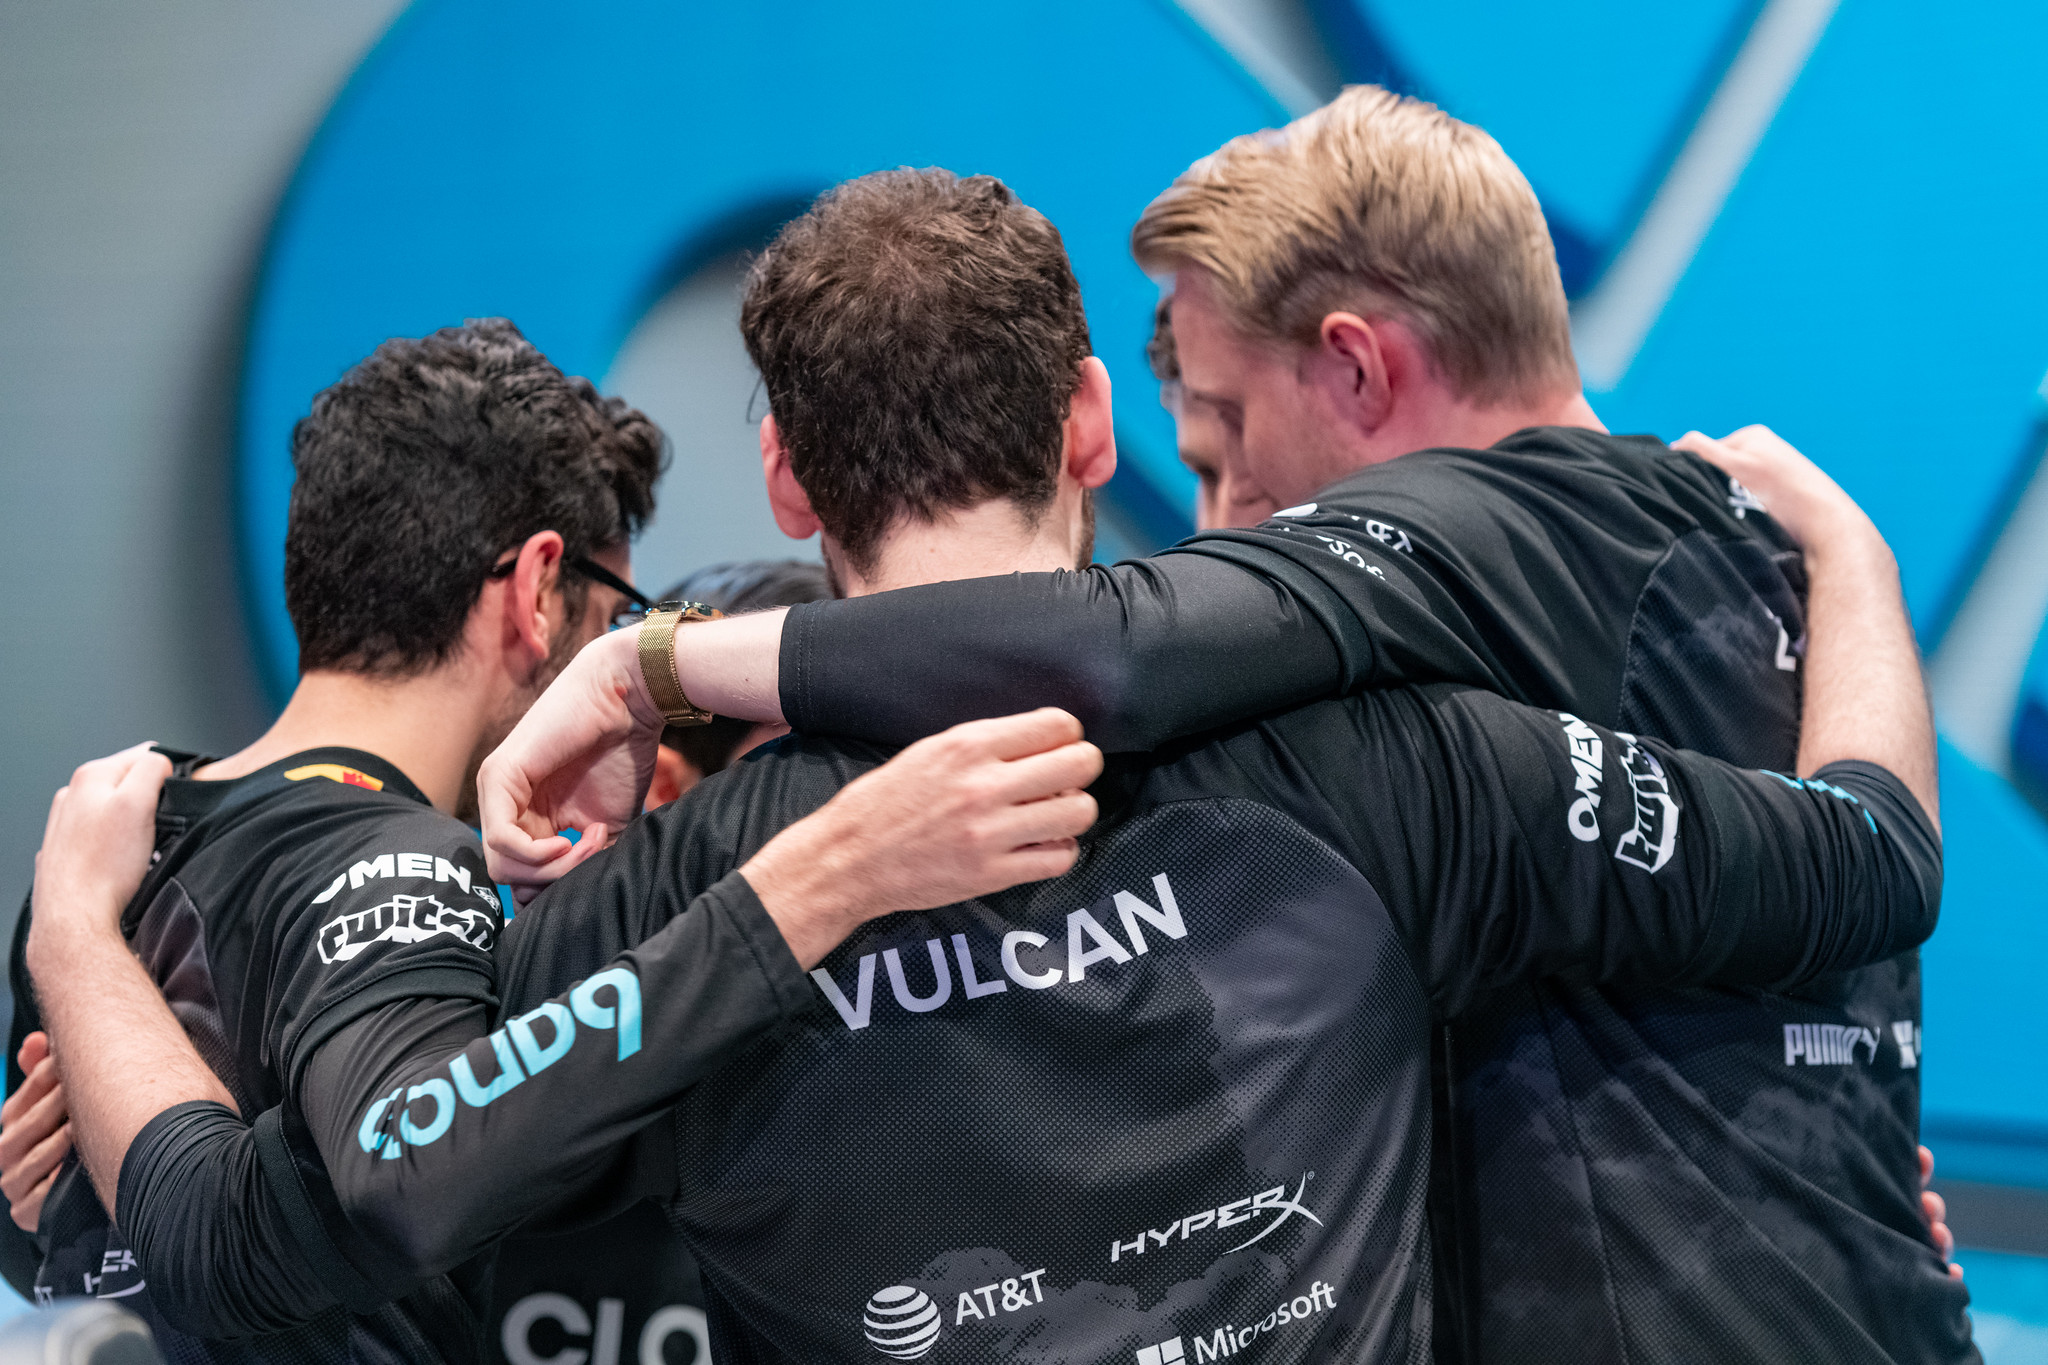 Cloud9 in team huddle during LCS